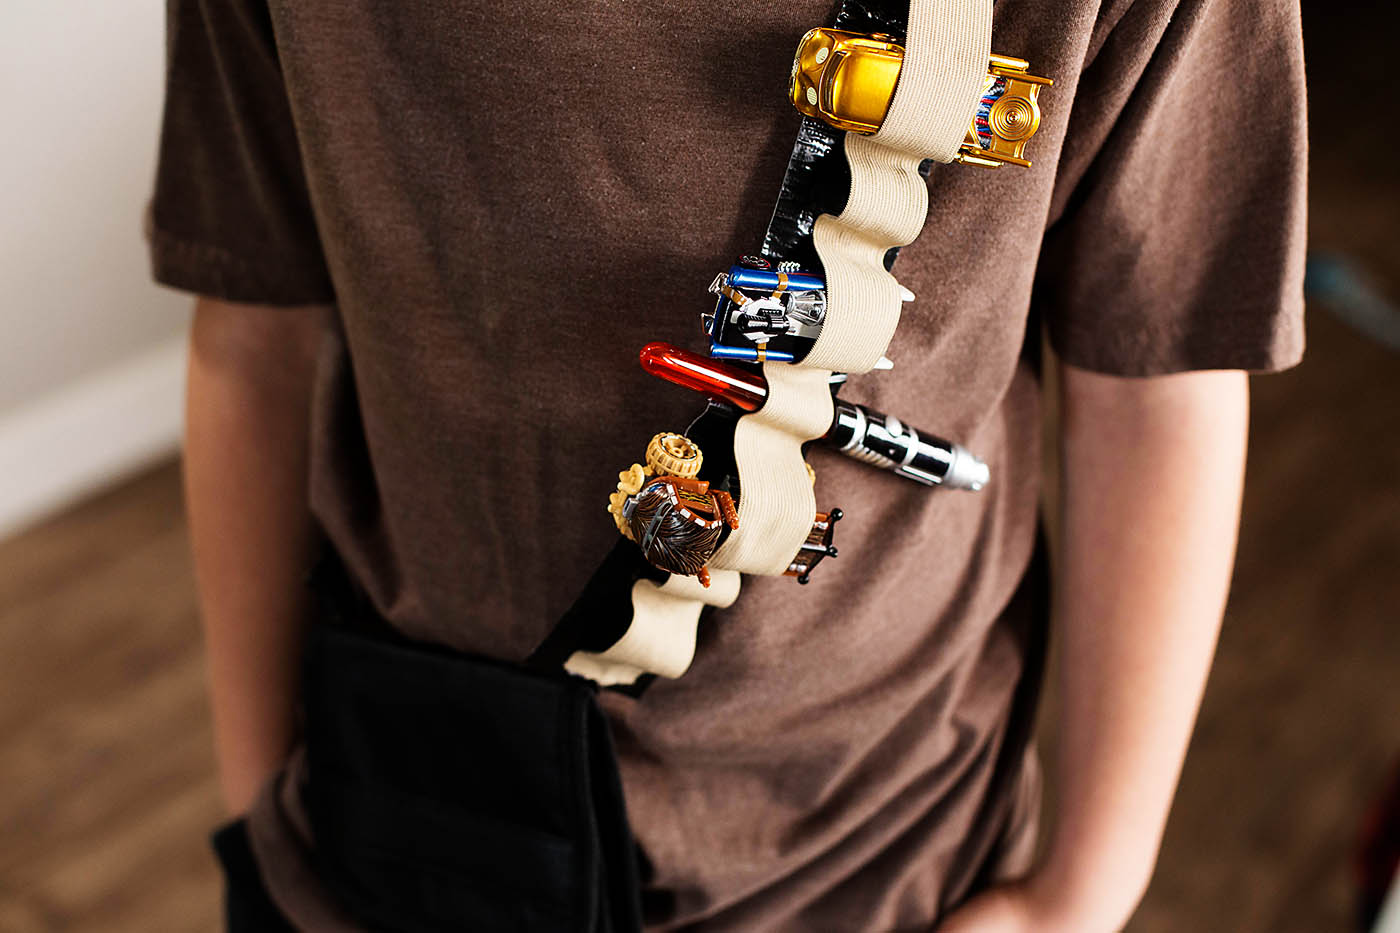 DIY Chewbacca Toy Bandolier